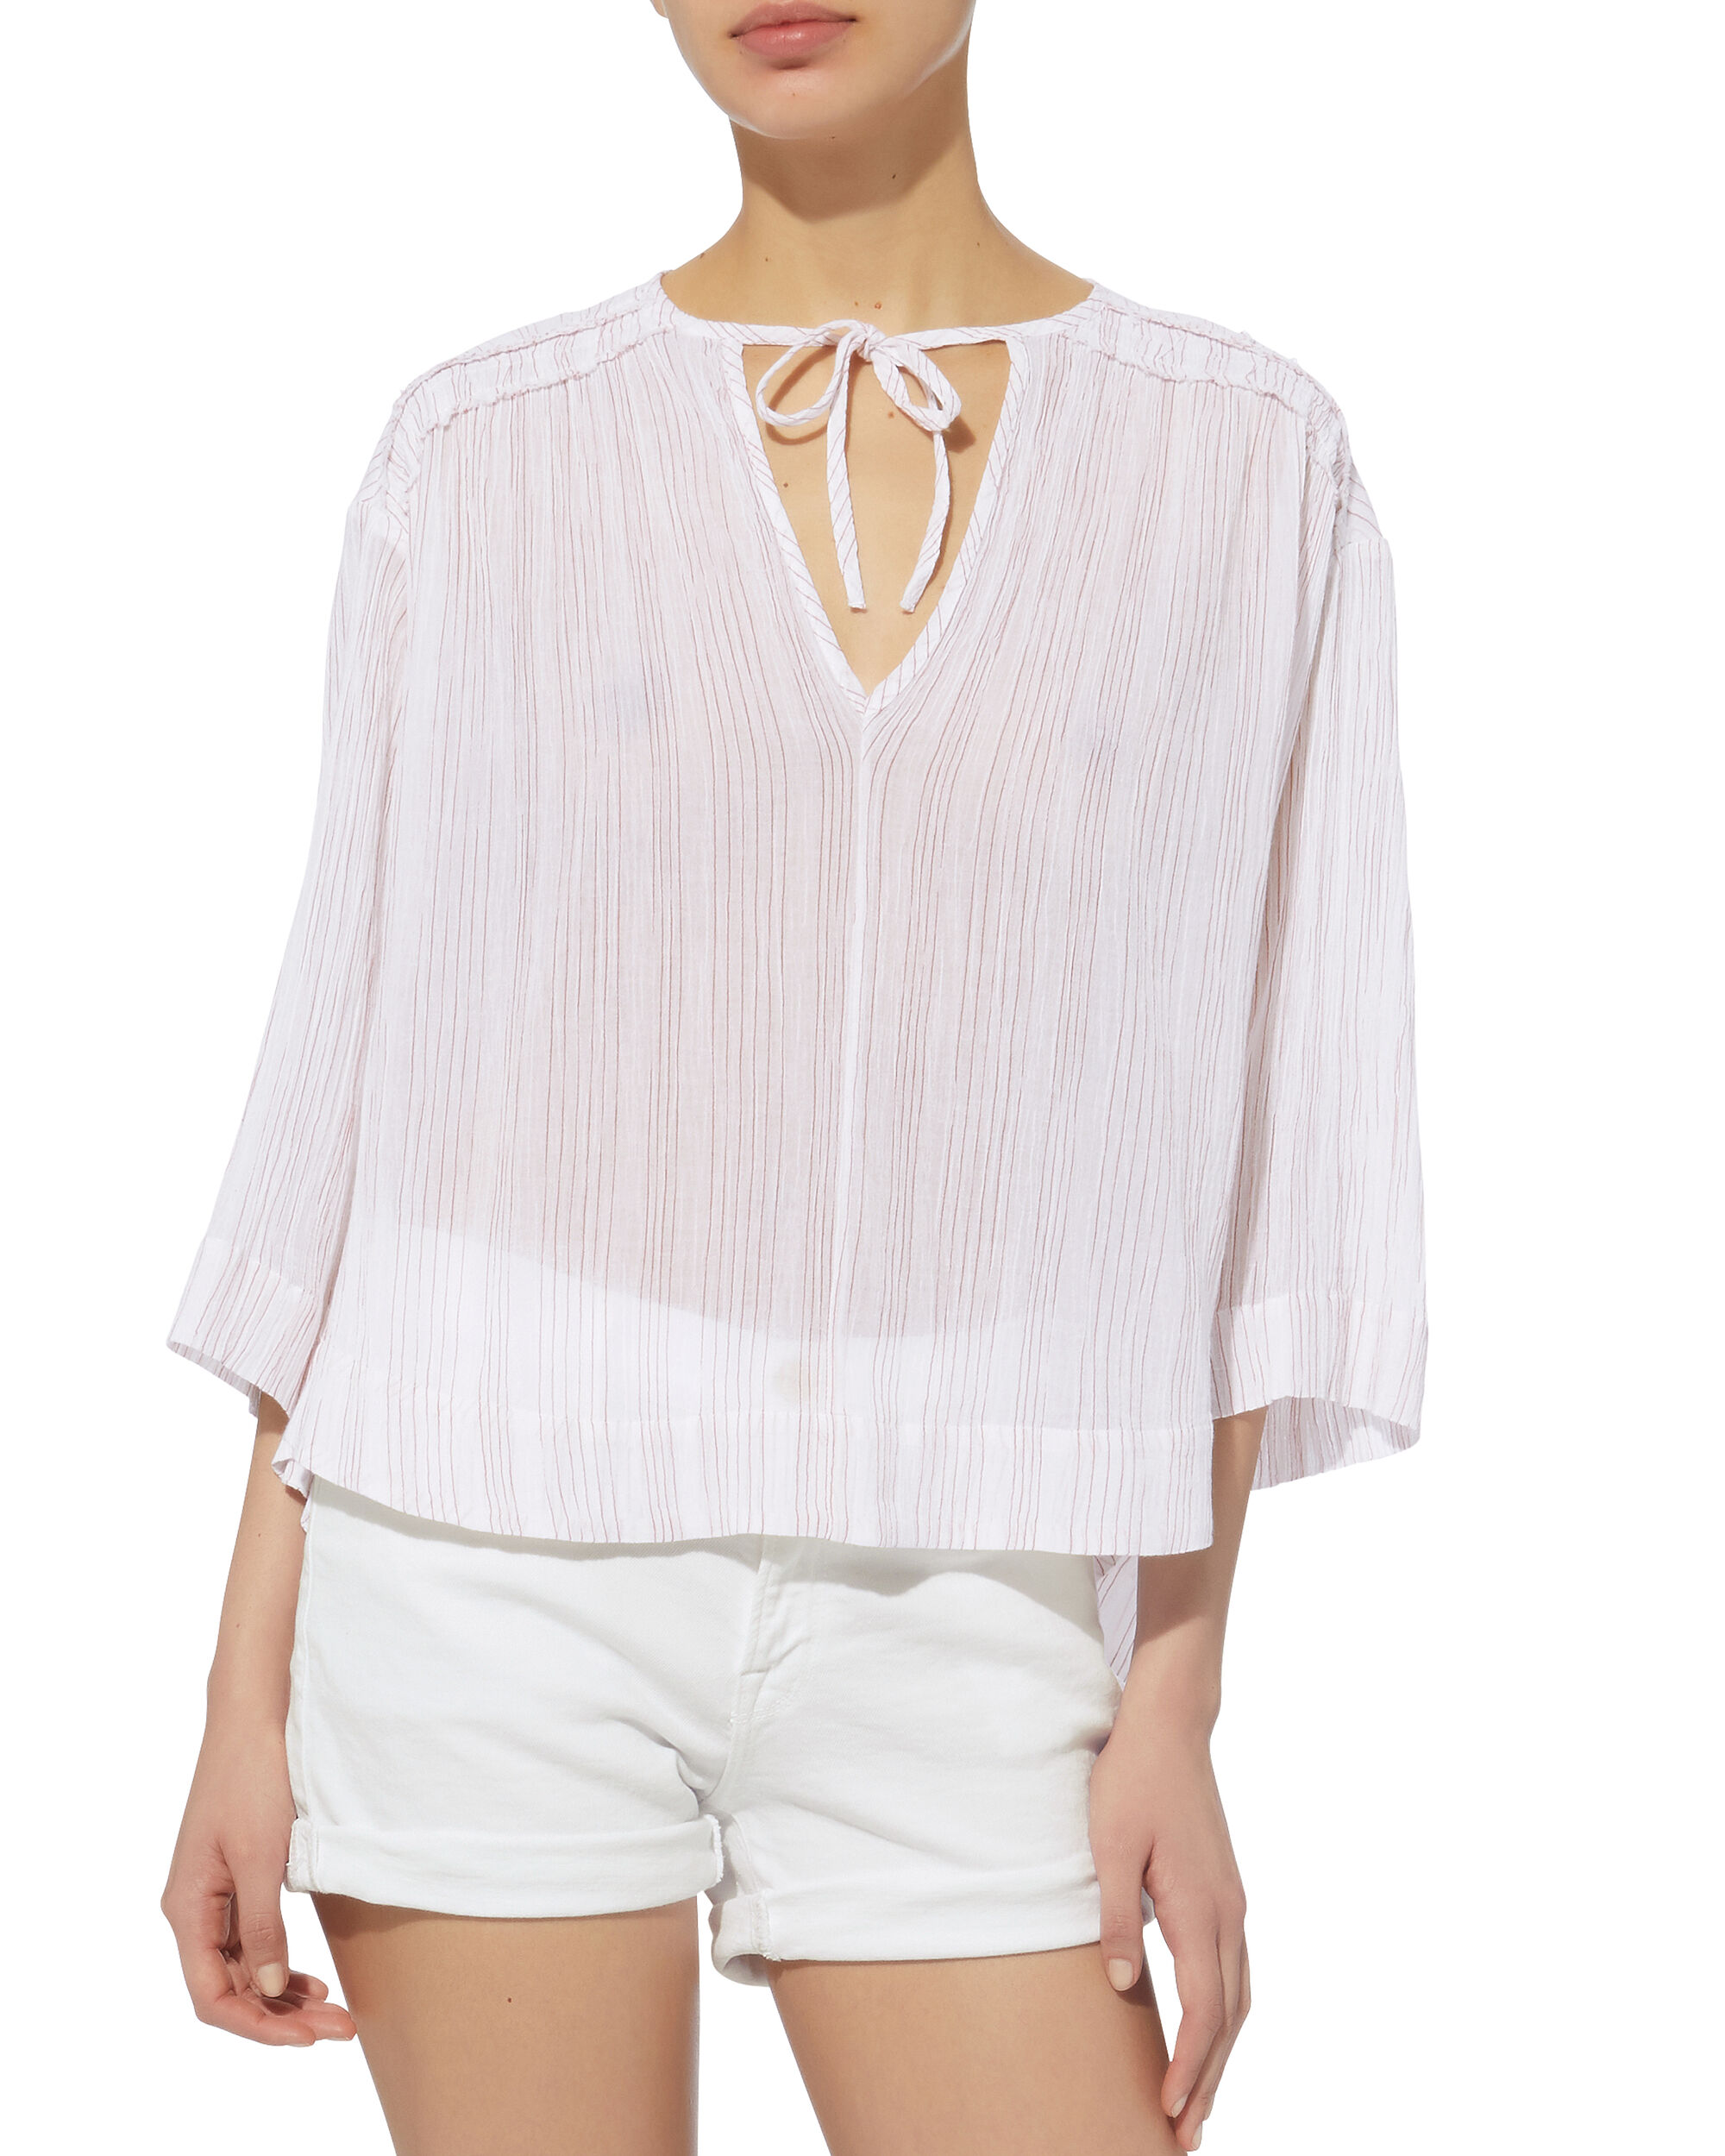 Variegated Striped Top, WHITE/STRIPE, hi-res